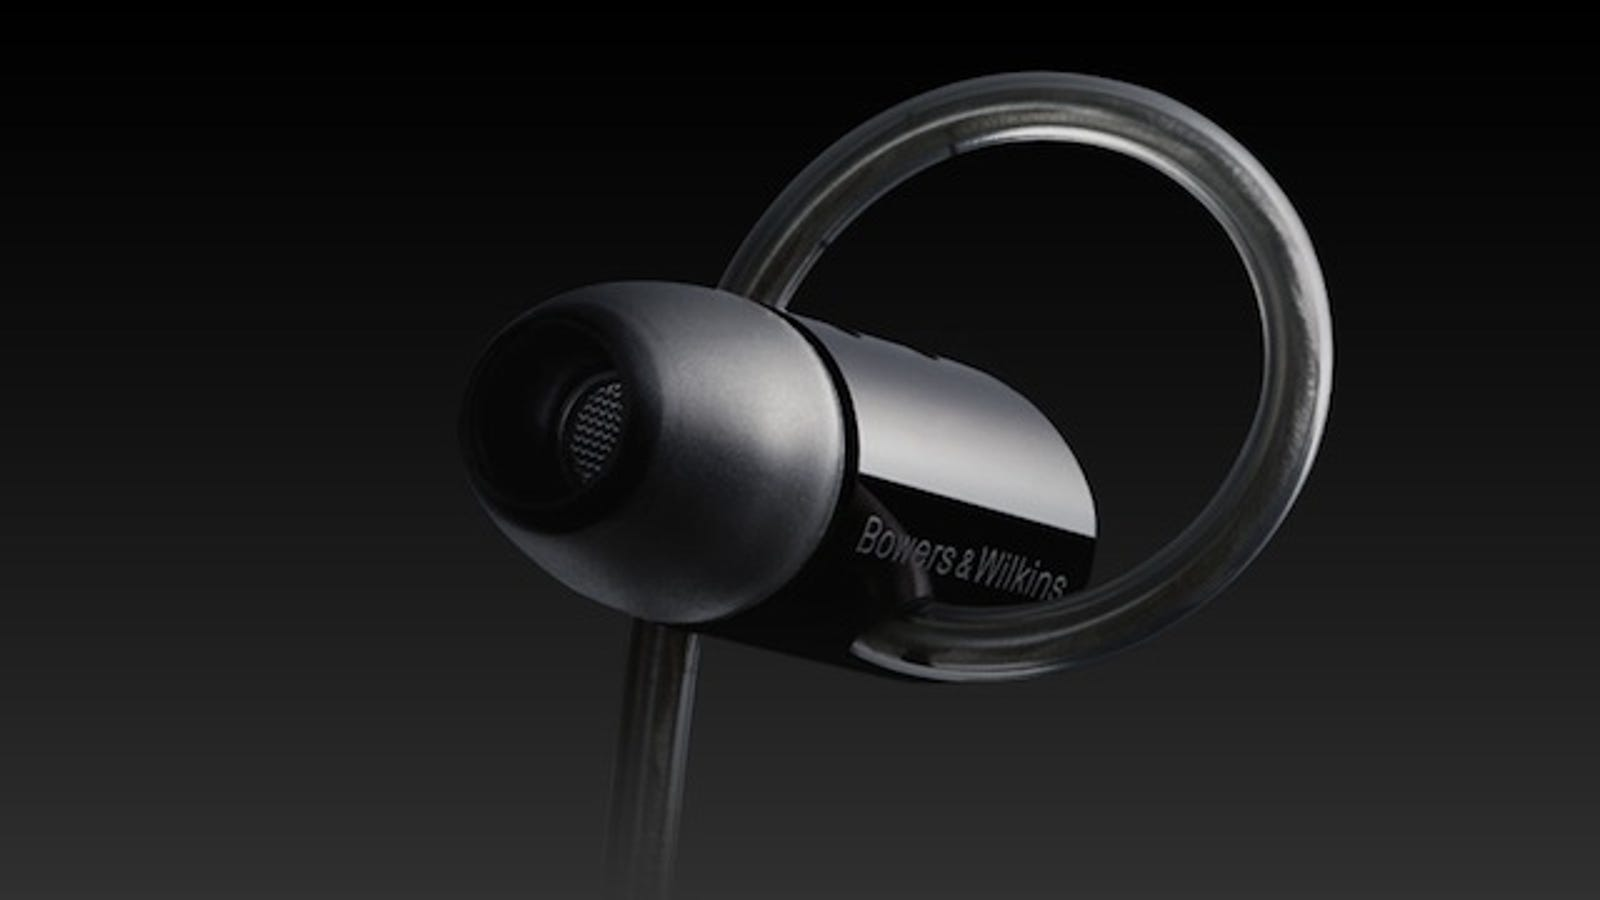 headphone lightning converter - Bowers & Wilkins C5 Headphones Will Probably Actually Stay on Your Head